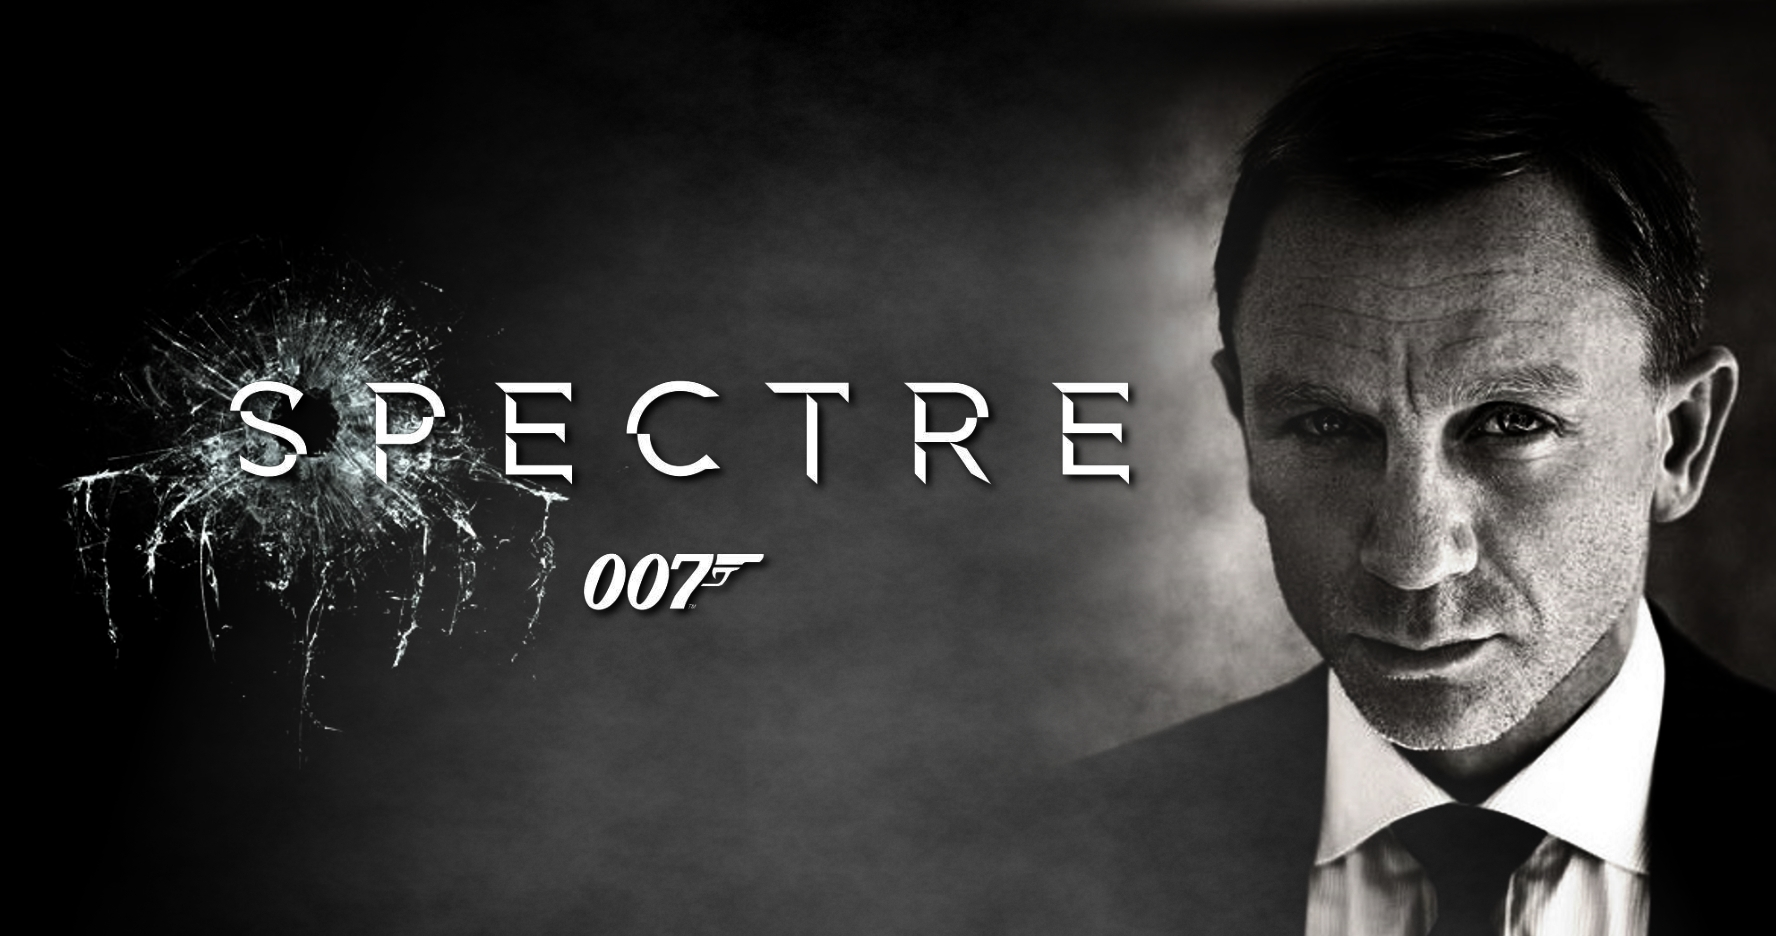 Spectre-007-with-Daniel-Craig